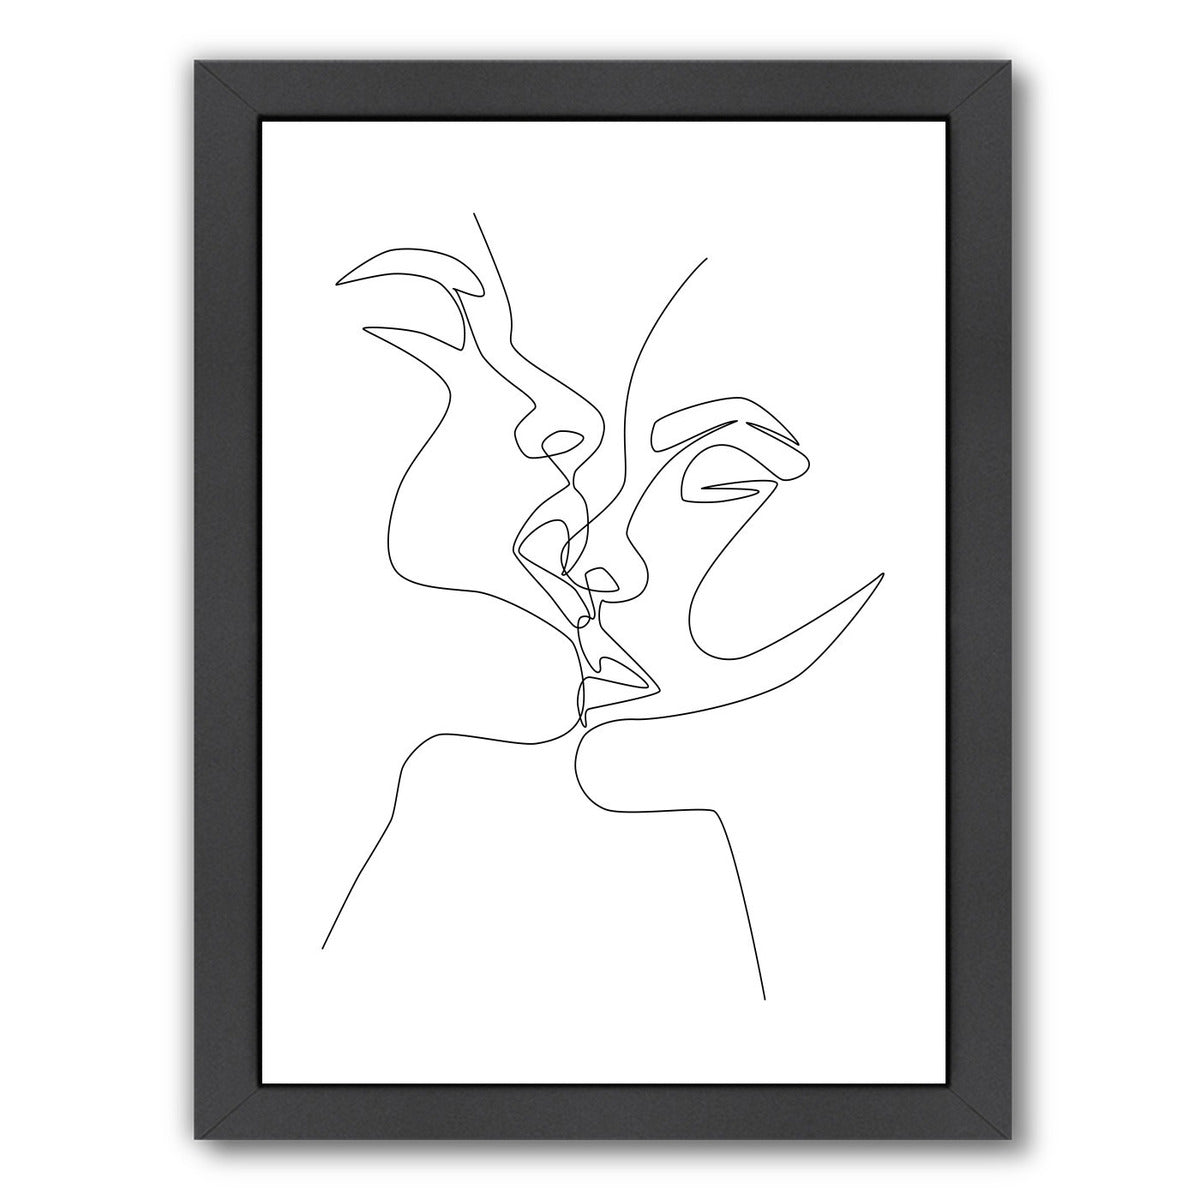 Intense & Intimate by Explicit Design Framed Print - Americanflat